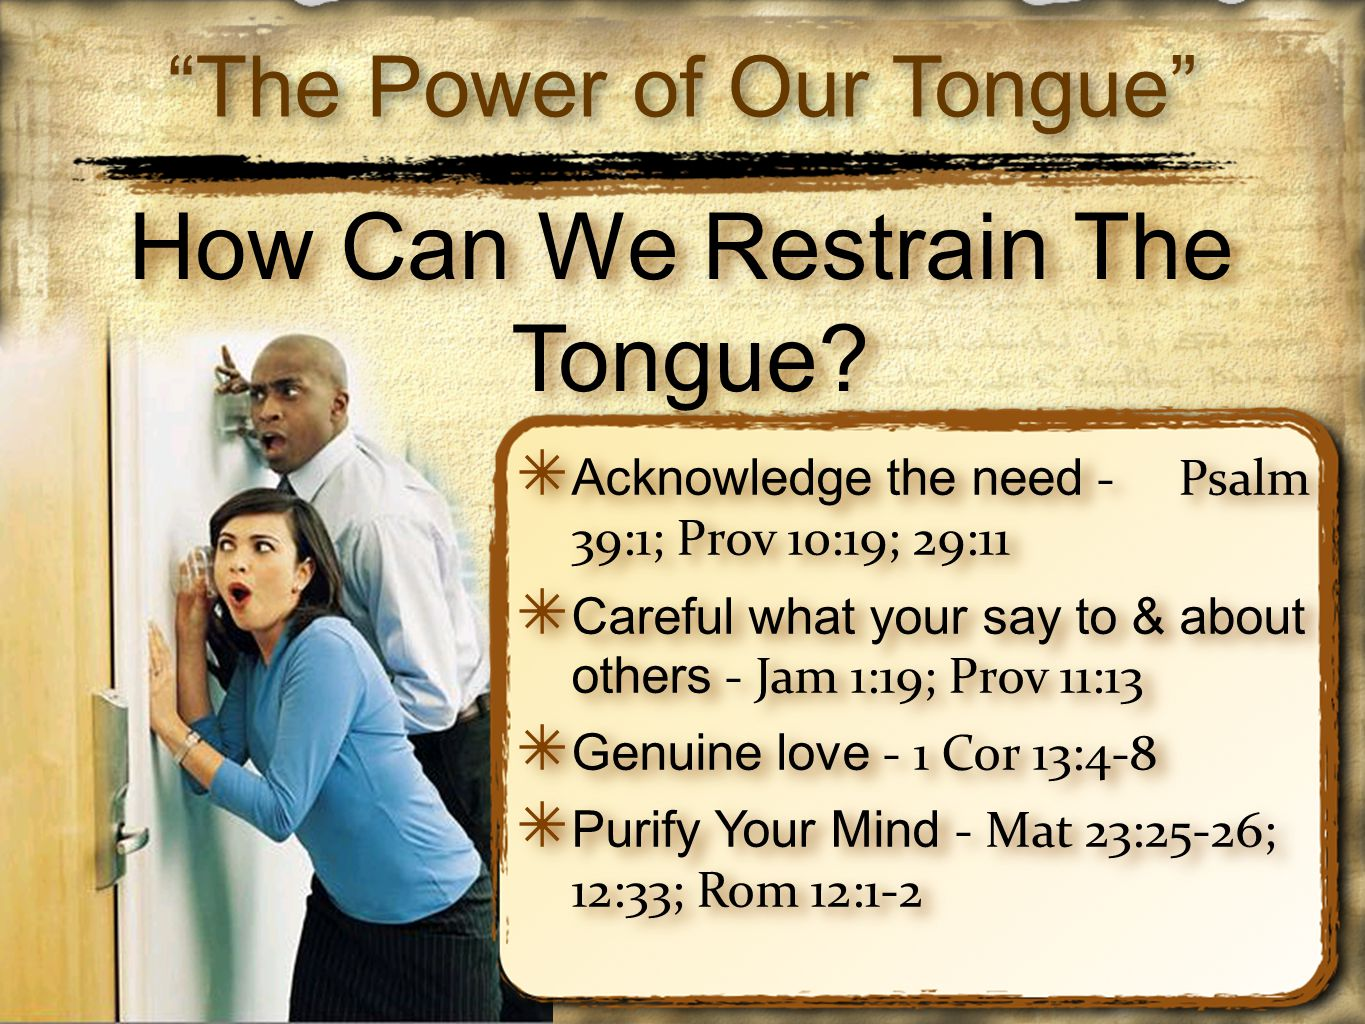 ✴ Acknowledge the need - Psalm 39:1; Prov 10:19; 29:11 ✴ Careful what your say to & about others - Jam 1:19; Prov 11:13 ✴ Genuine love - 1 Cor 13:4-8